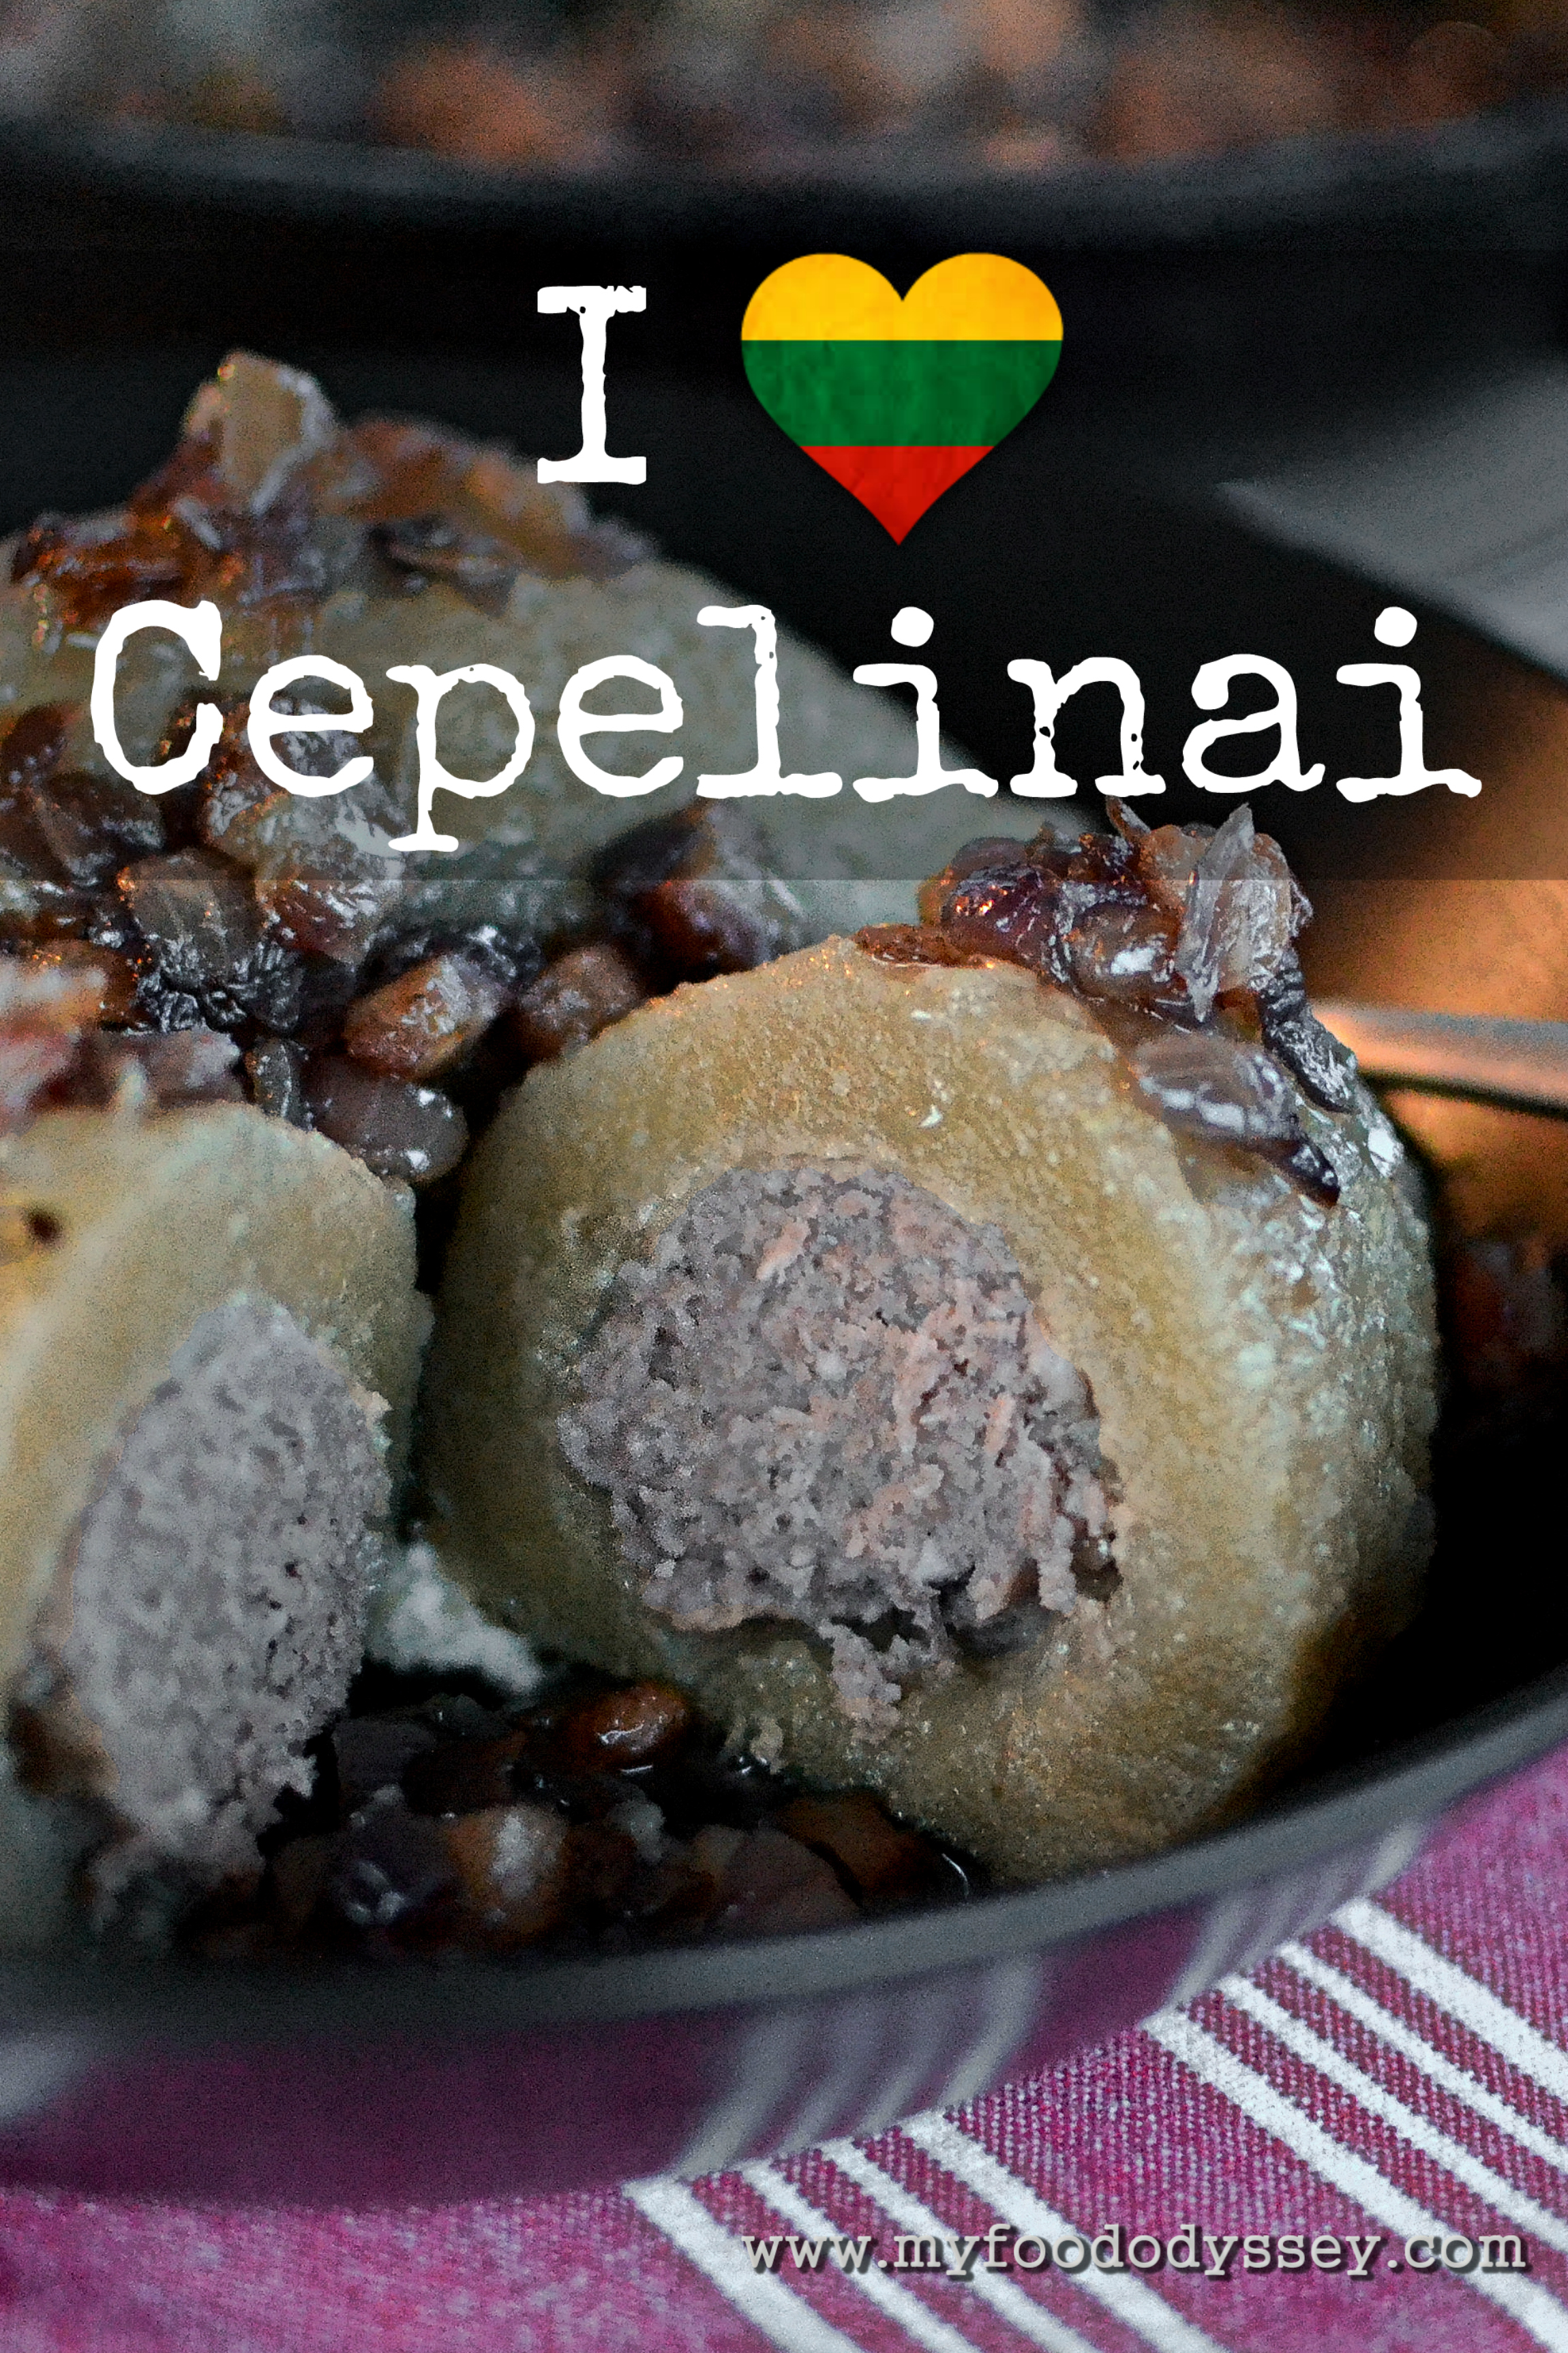 Cepelinai for beginners recipe my food odyssey lithuanian cepelinai potato dumplings myfoododyssey forumfinder Gallery